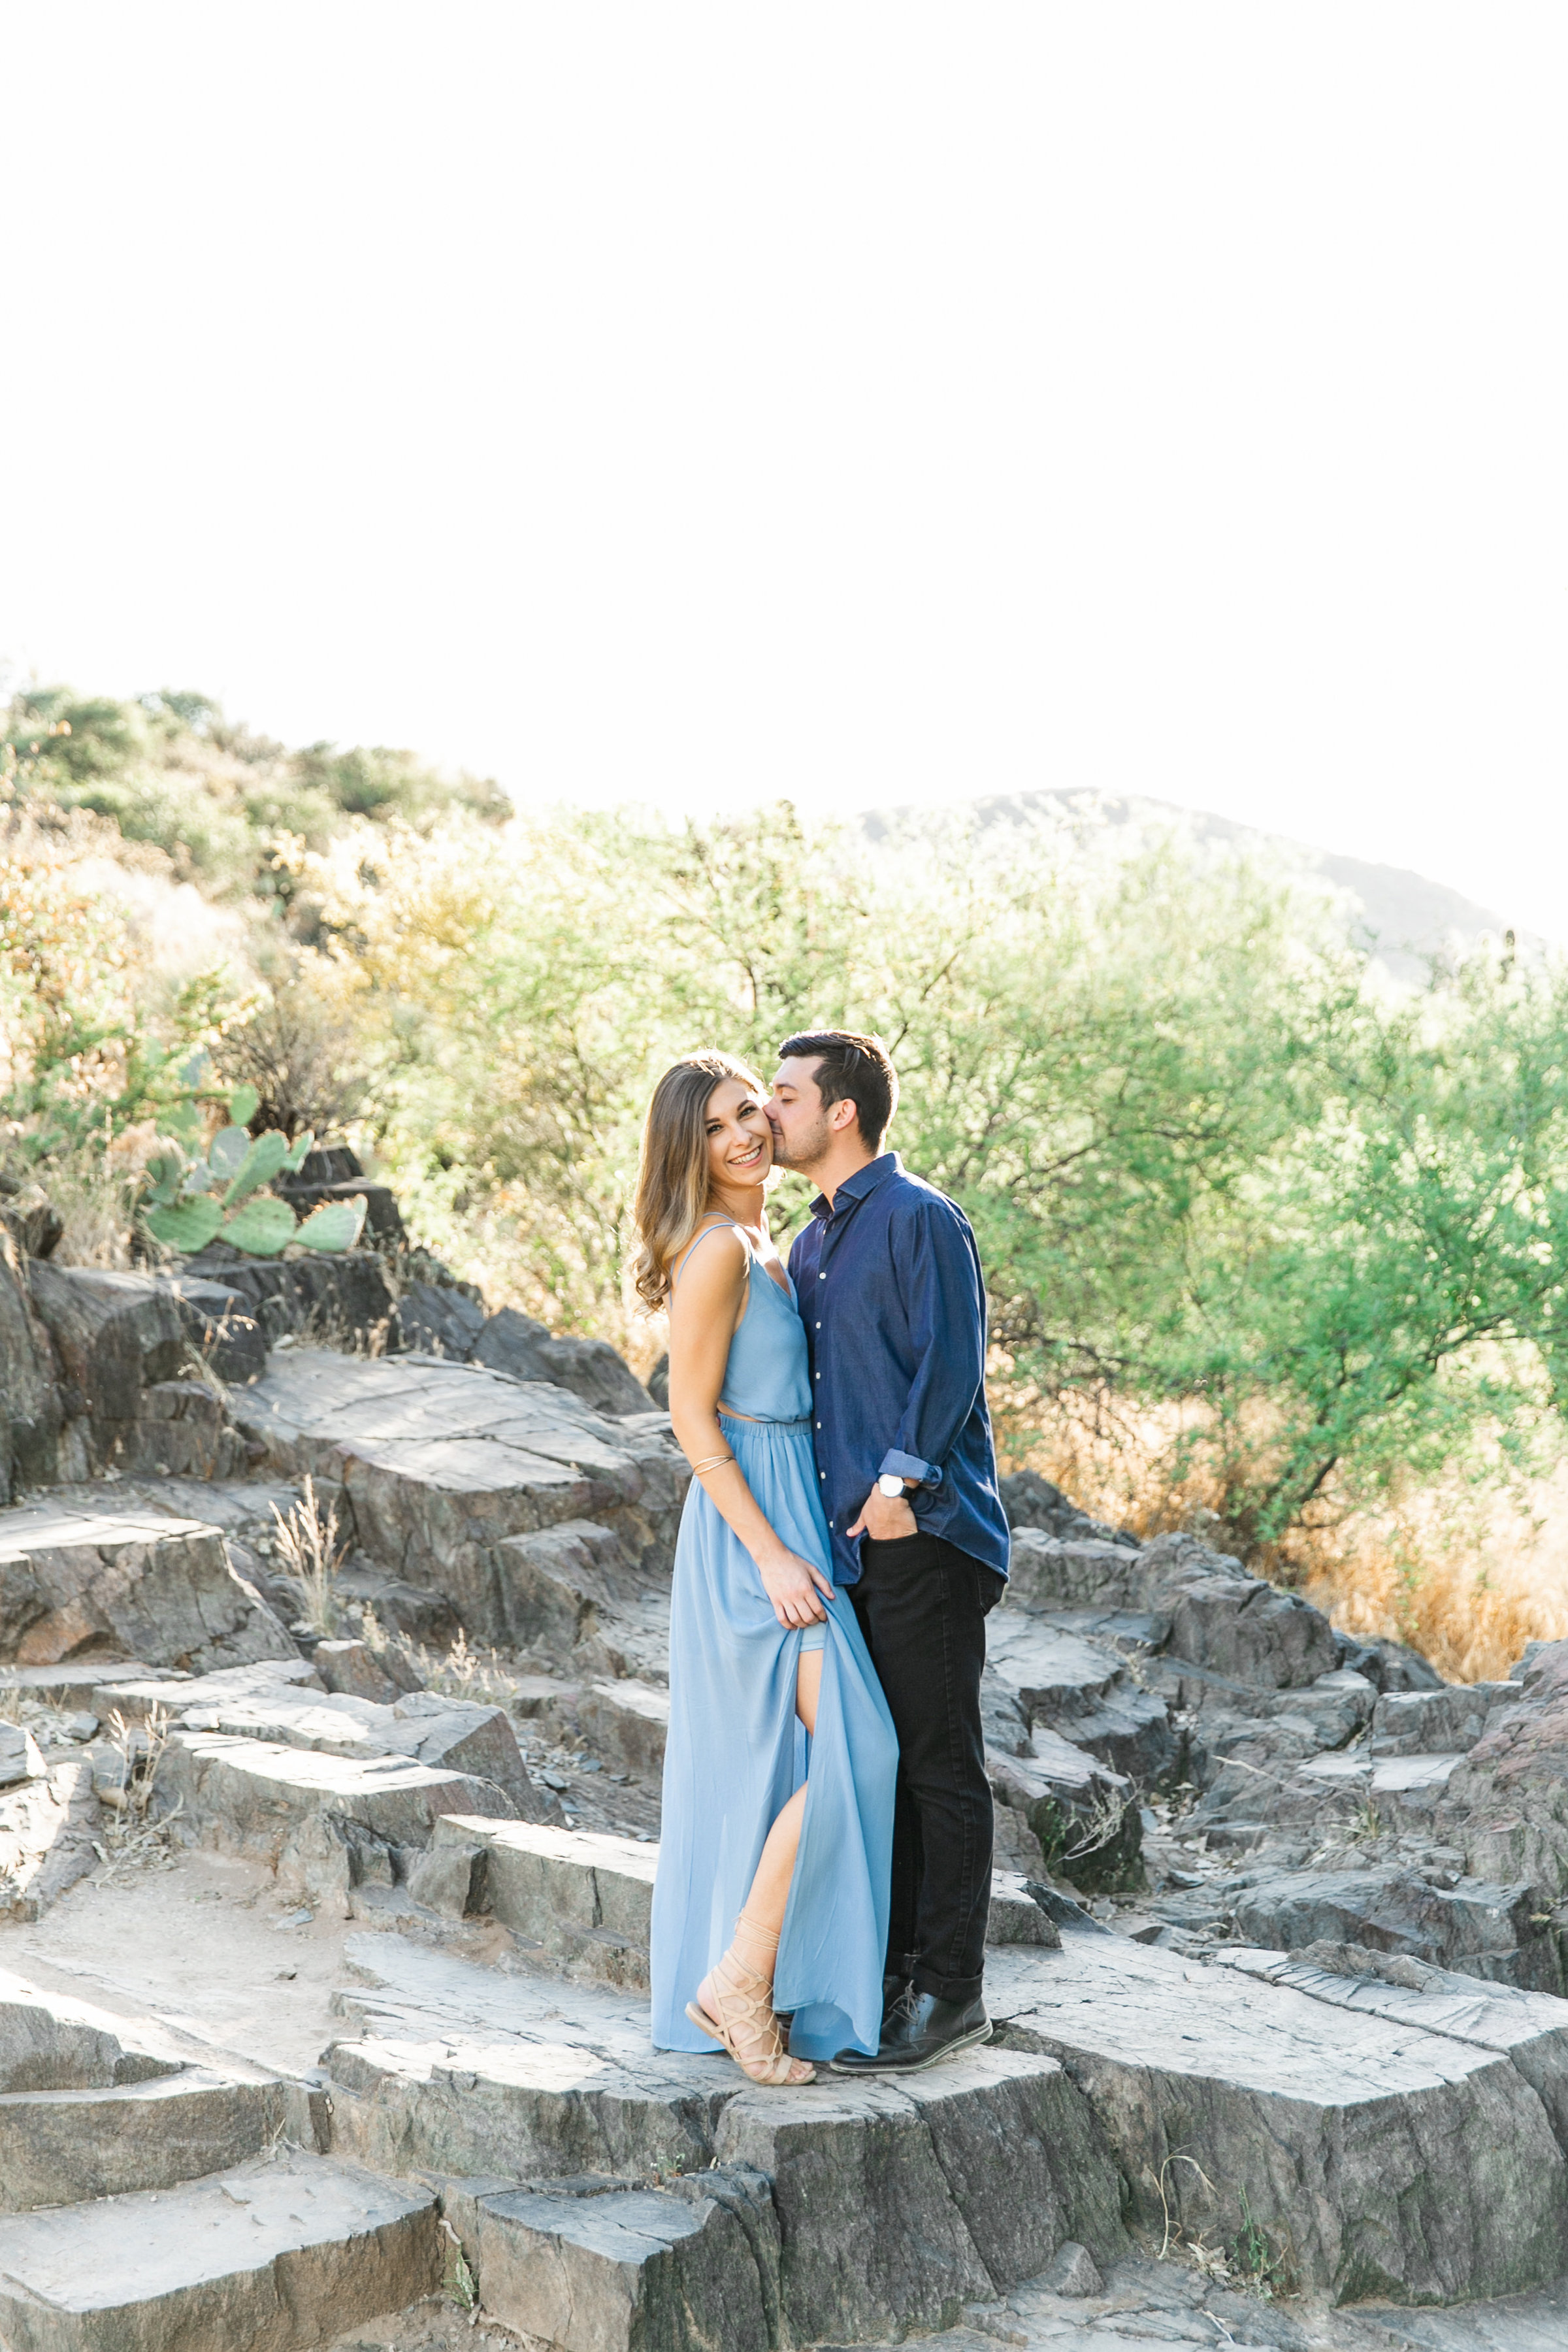 Karlie Colleen Photography - Arizona Desert Engagement - Brynne & Josh -4